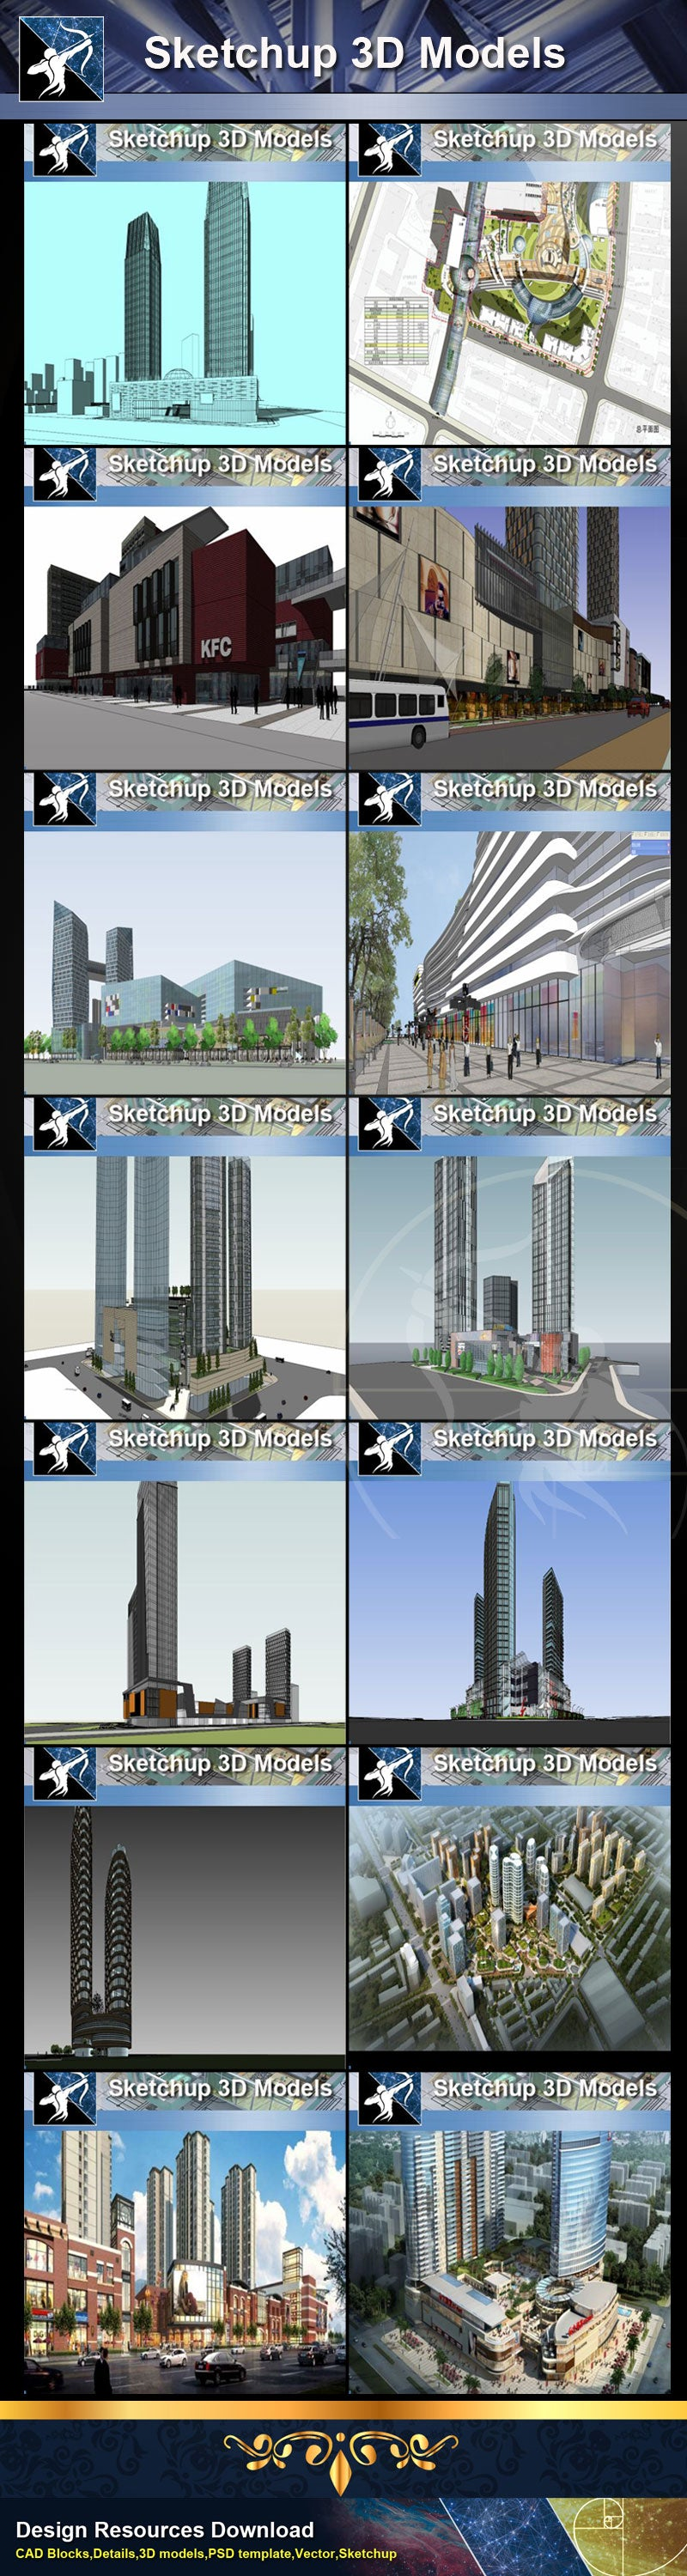 ☆Best 29 Types of Large Scale Commercial Building Sketchup 3D Models C